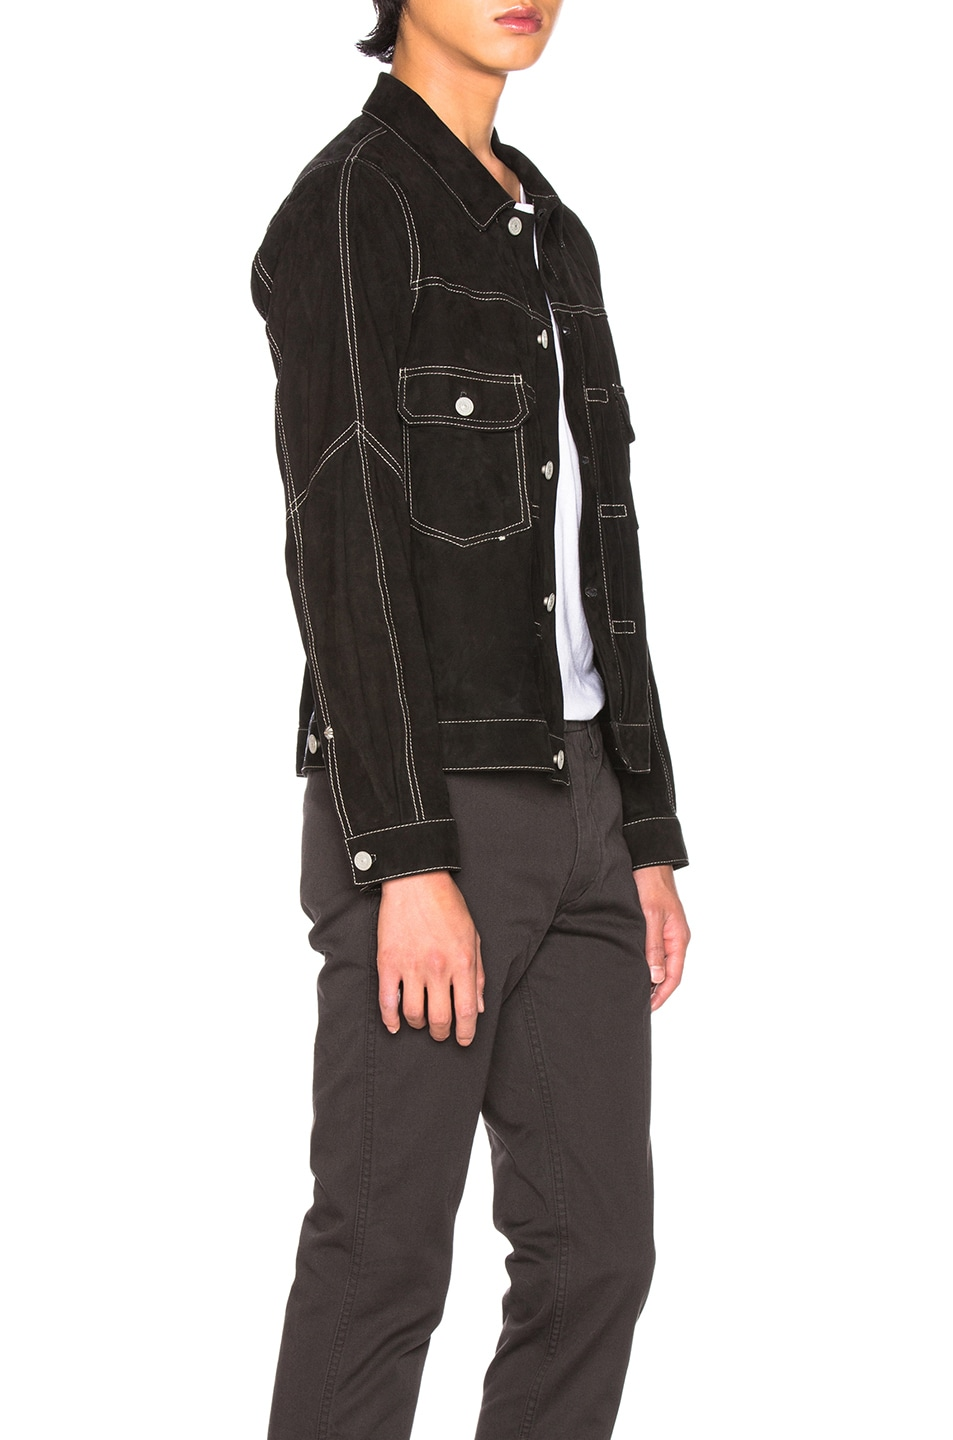 30%OFF Visvim Italian 101 Jacket Black